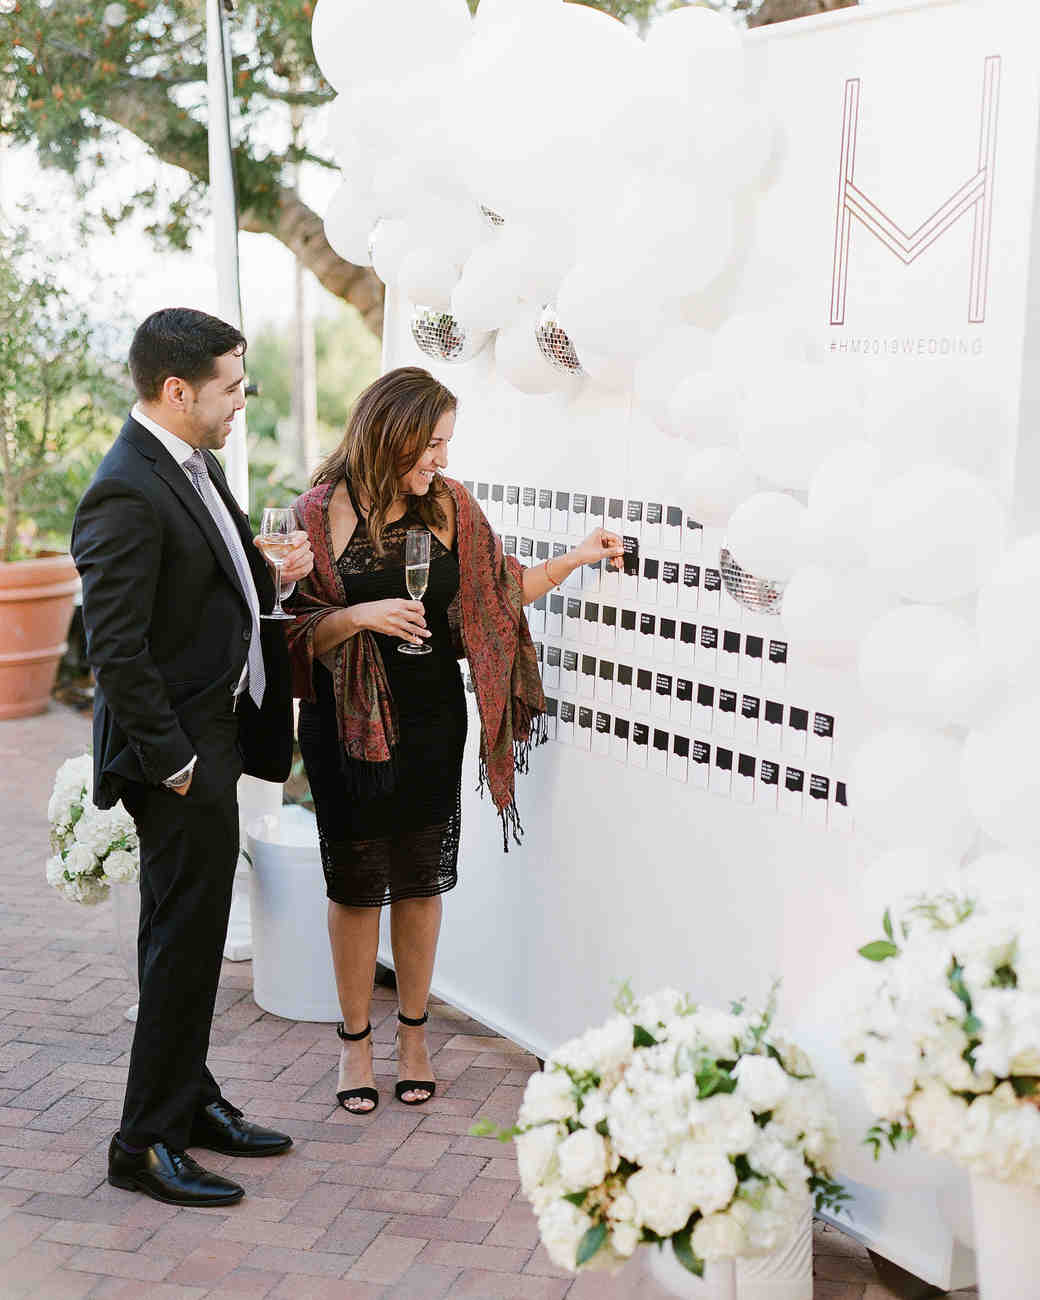 henery michael wedding seating chart and guests